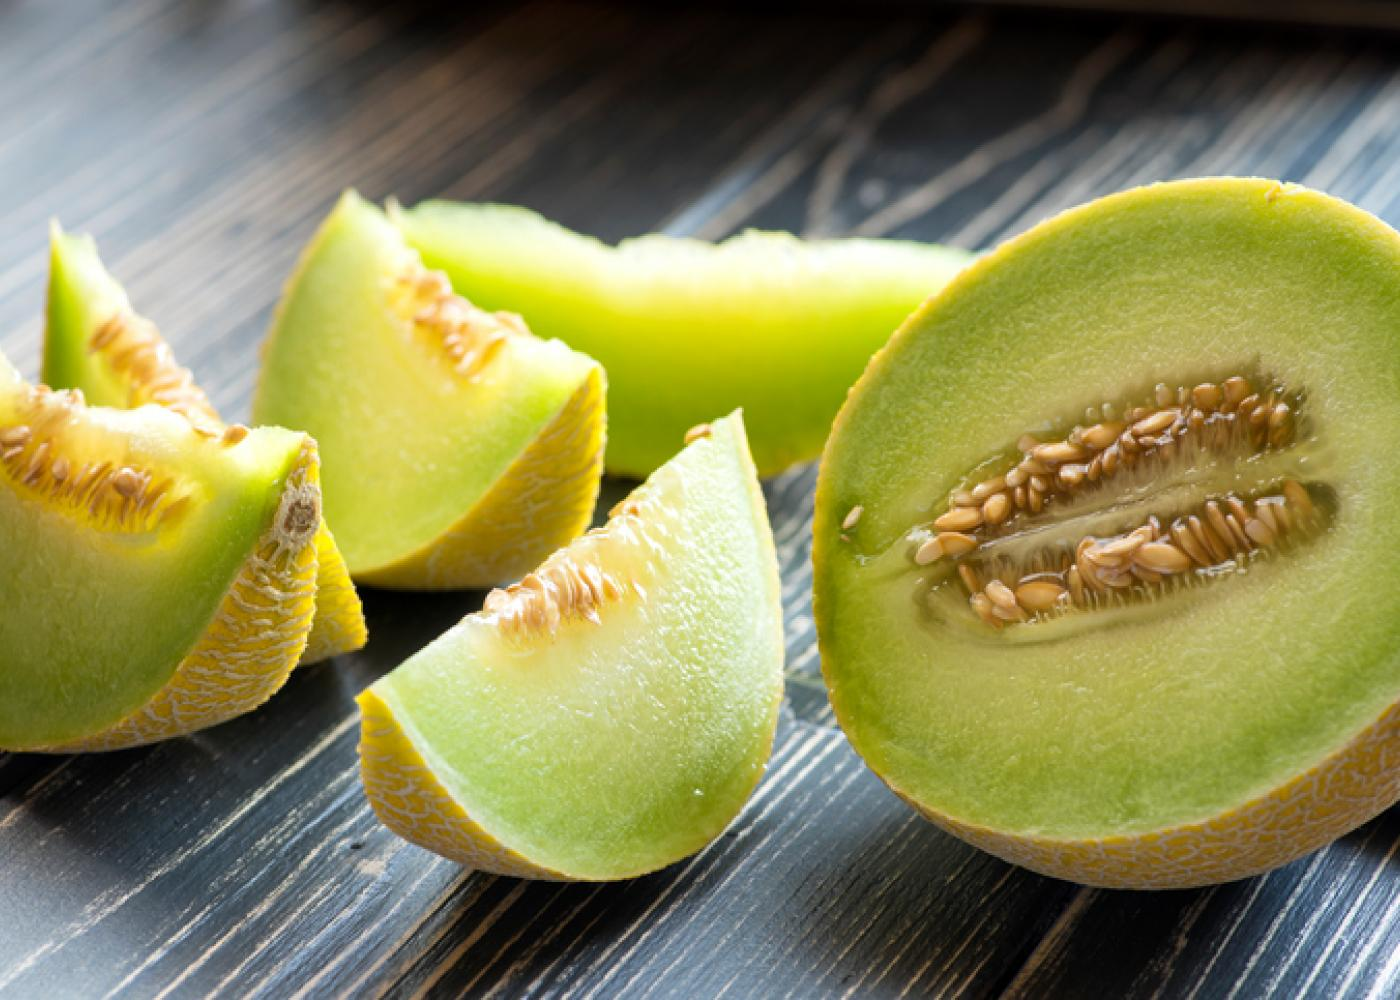 Honeydew Melon Image